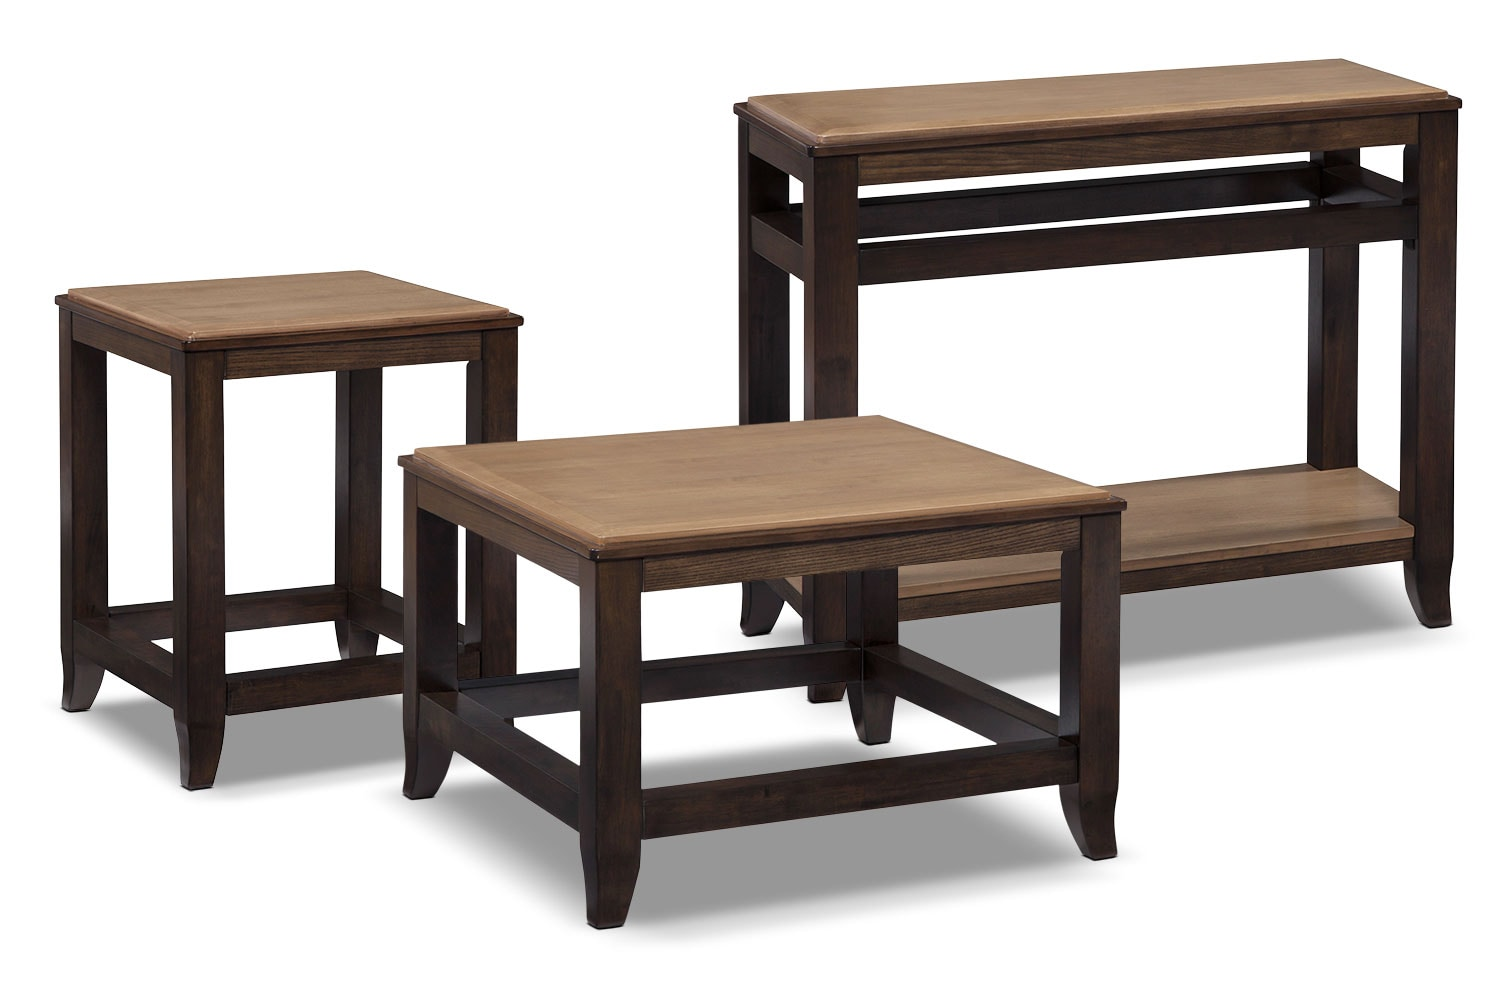 Accent and Occasional Furniture - Oslo 3-Piece Coffee, End and Sofa Table Package